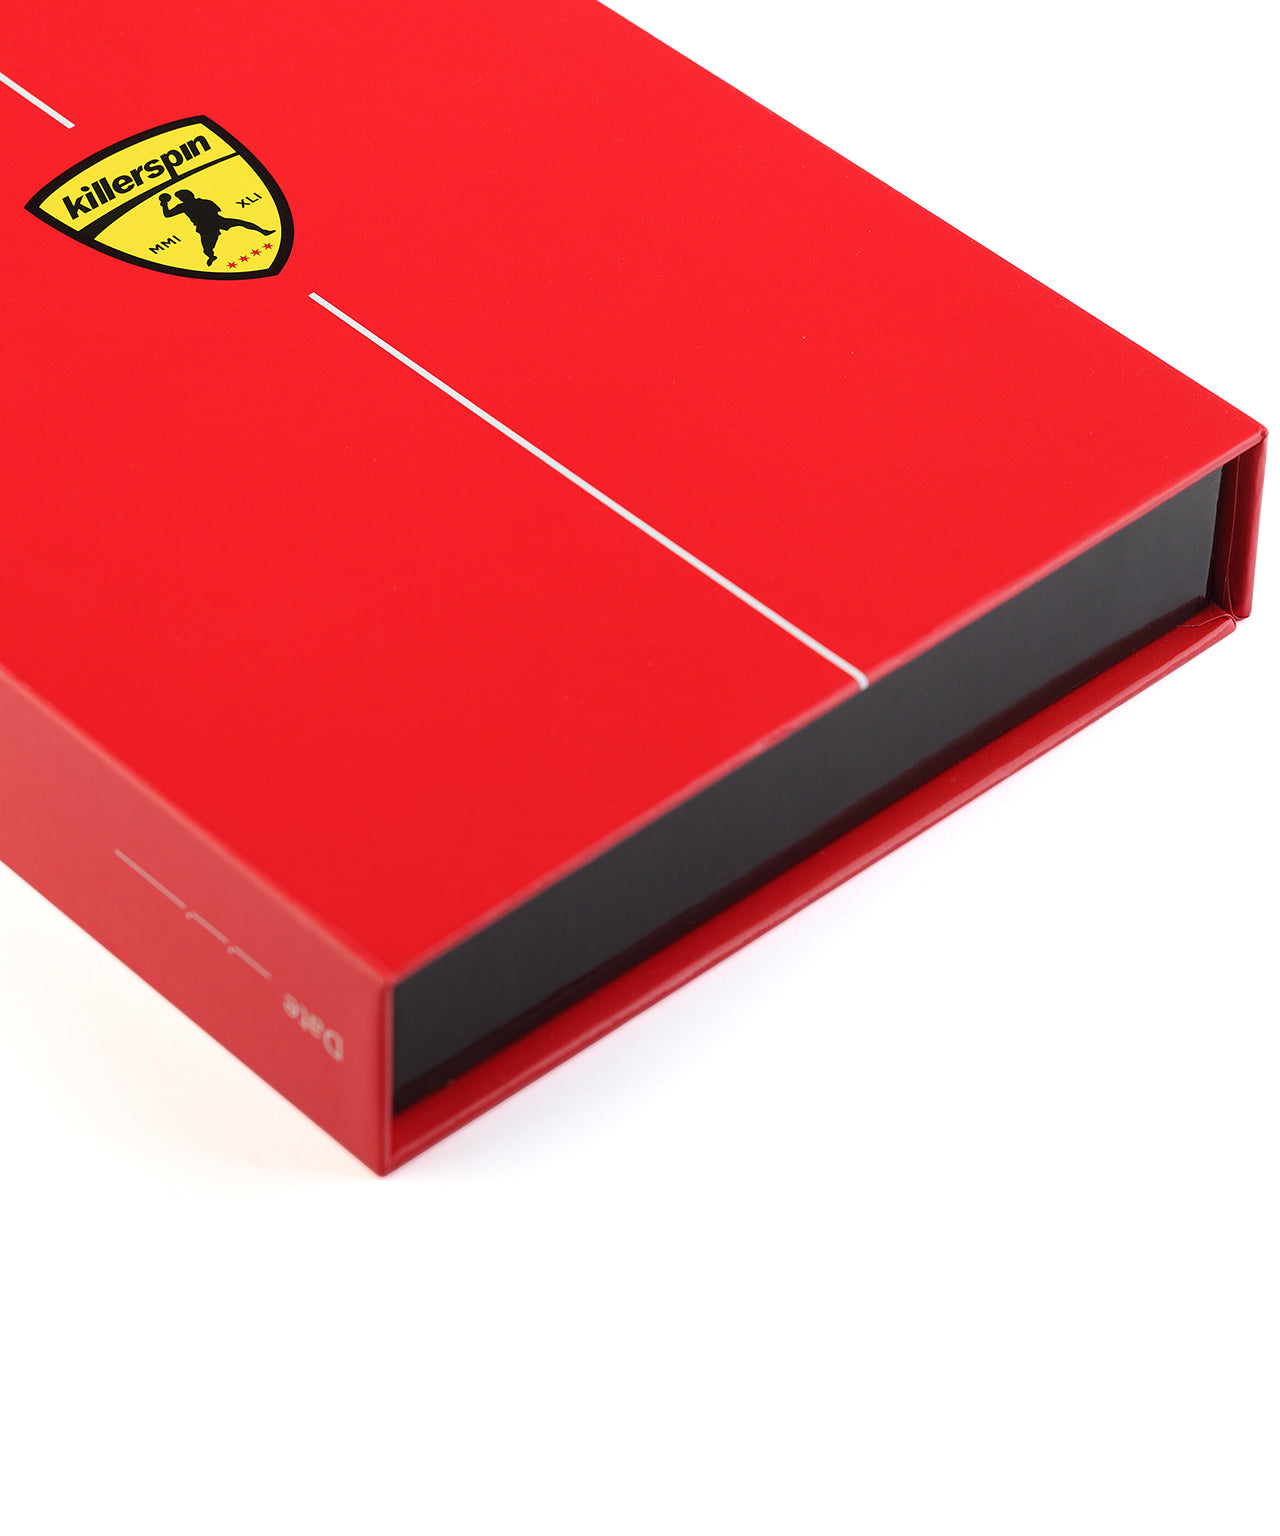 Killerspin Red Memory Book Ping Pong Paddle Box - Logo